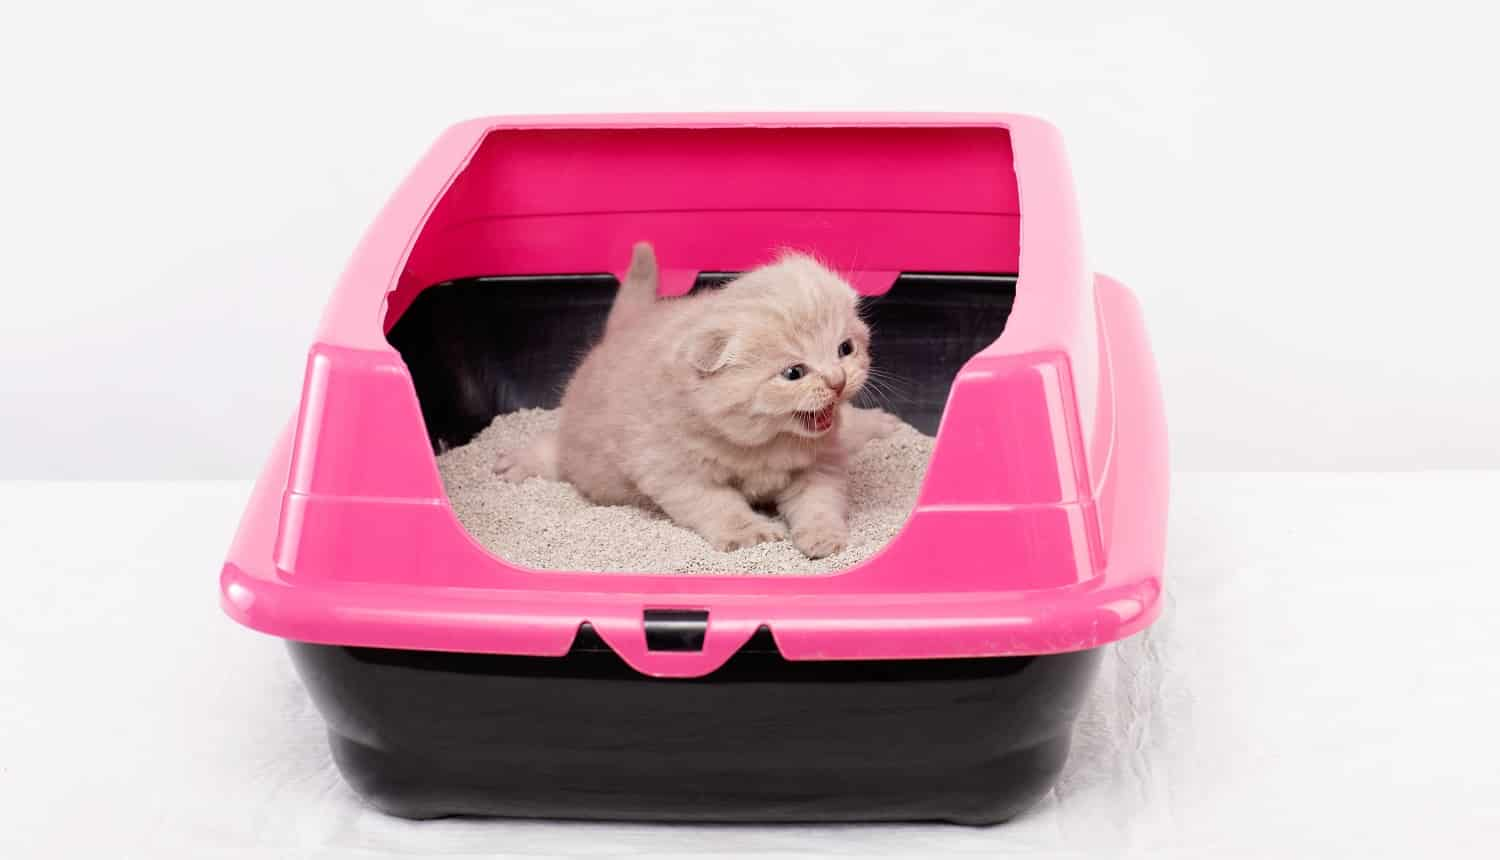 British kitten learns to walk in a pink tray, white background